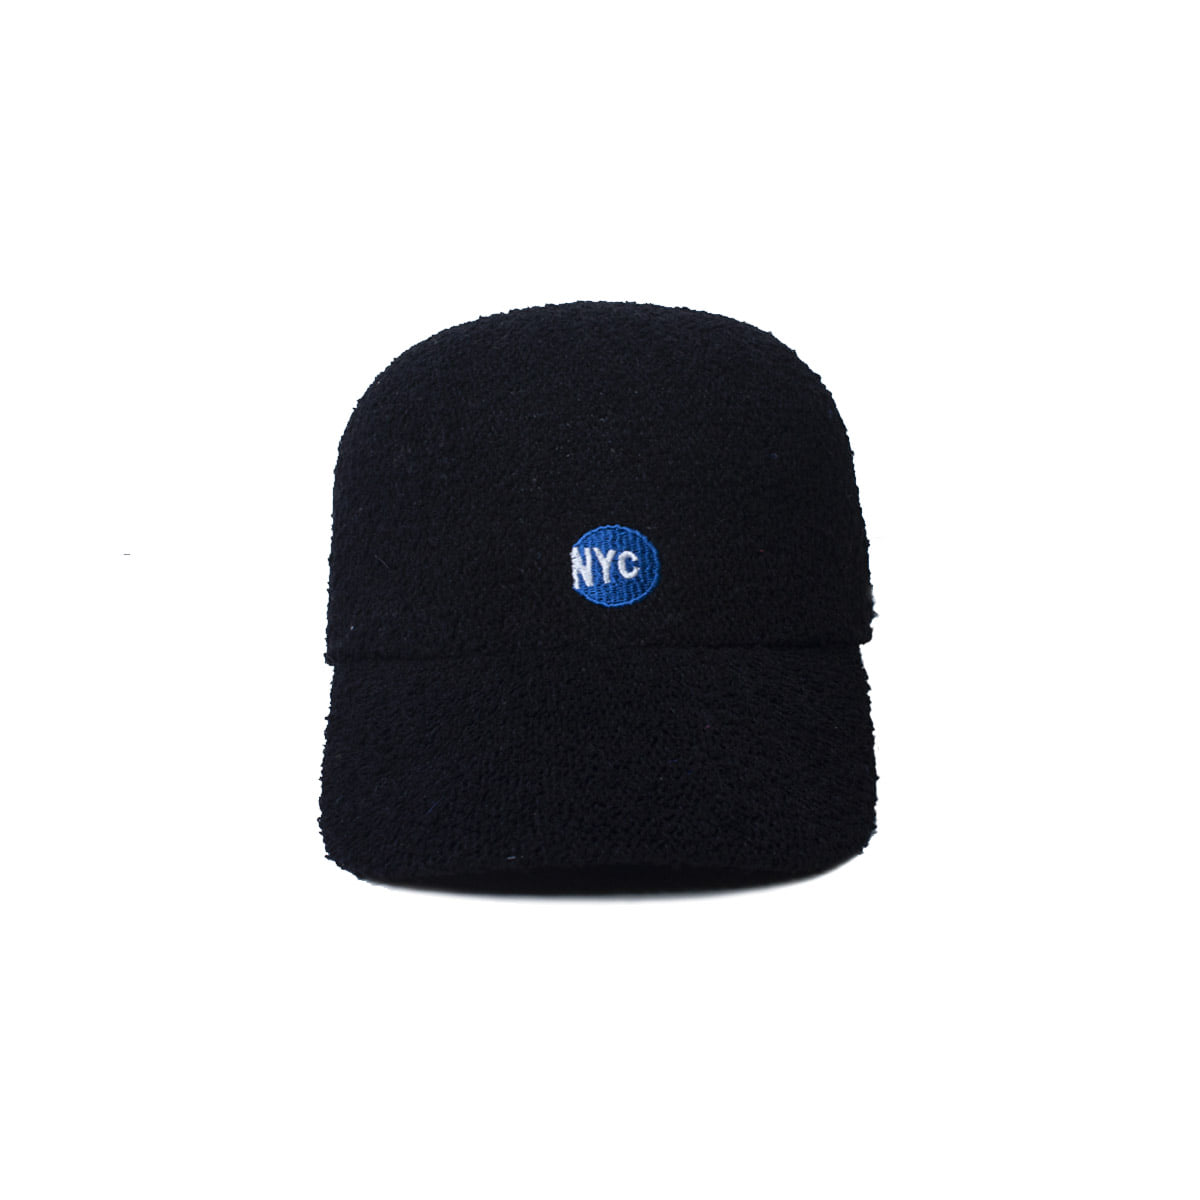 [INFILEDER DESIGN] NYC CAP 'BLACK'